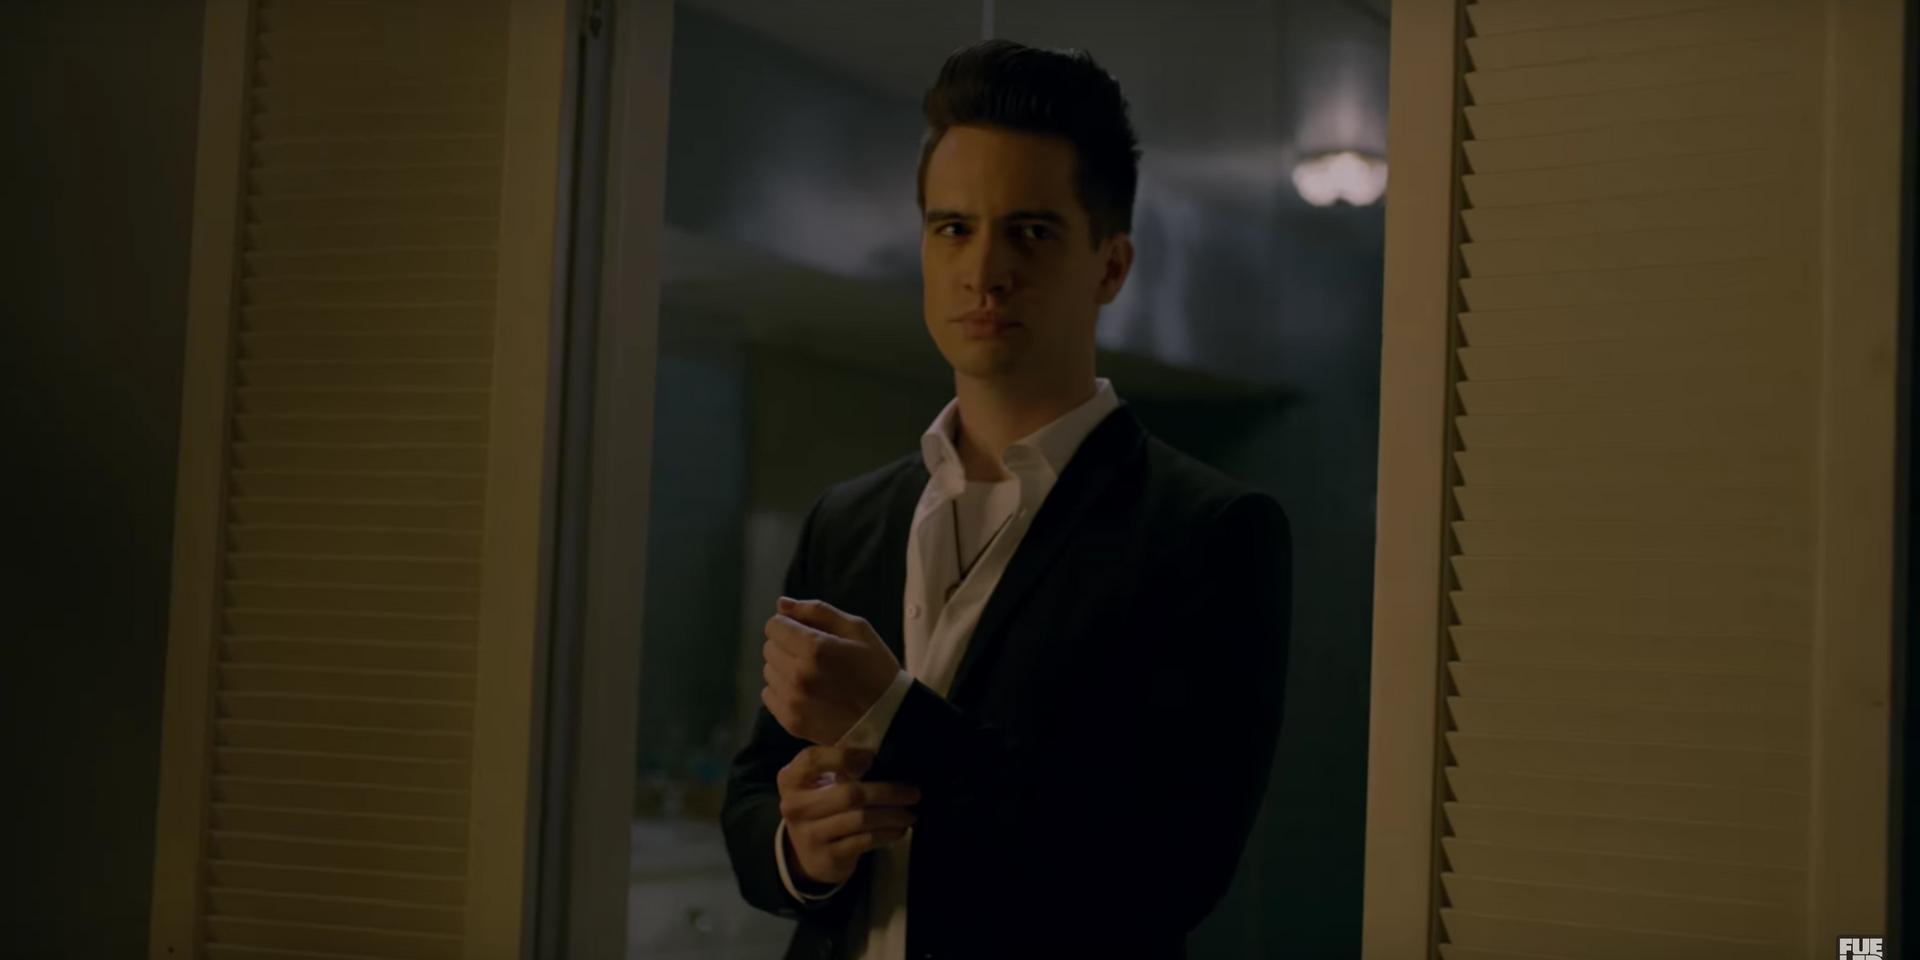 Panic! at the Disco drop new music, including video for 'Say Amen (Saturday Night)' –watch